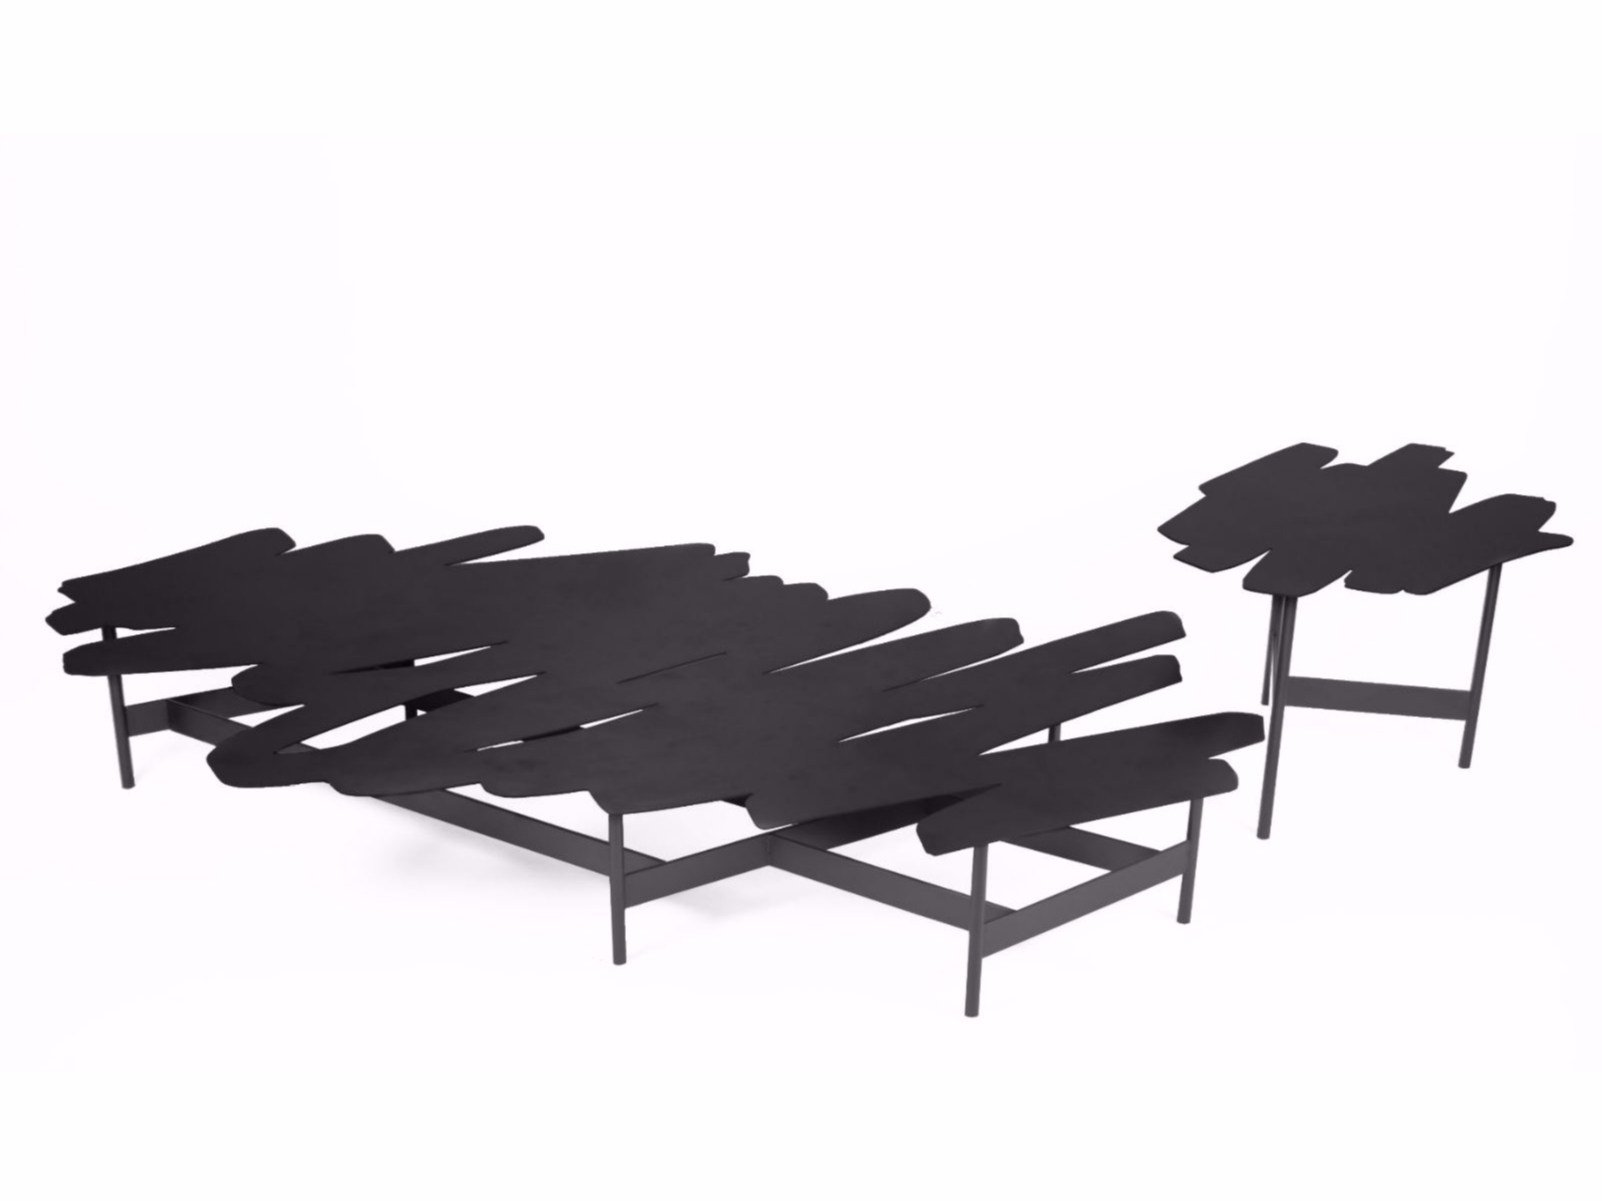 roche bobois tables basses perfect table basse salon but table basse verre but with table basse. Black Bedroom Furniture Sets. Home Design Ideas